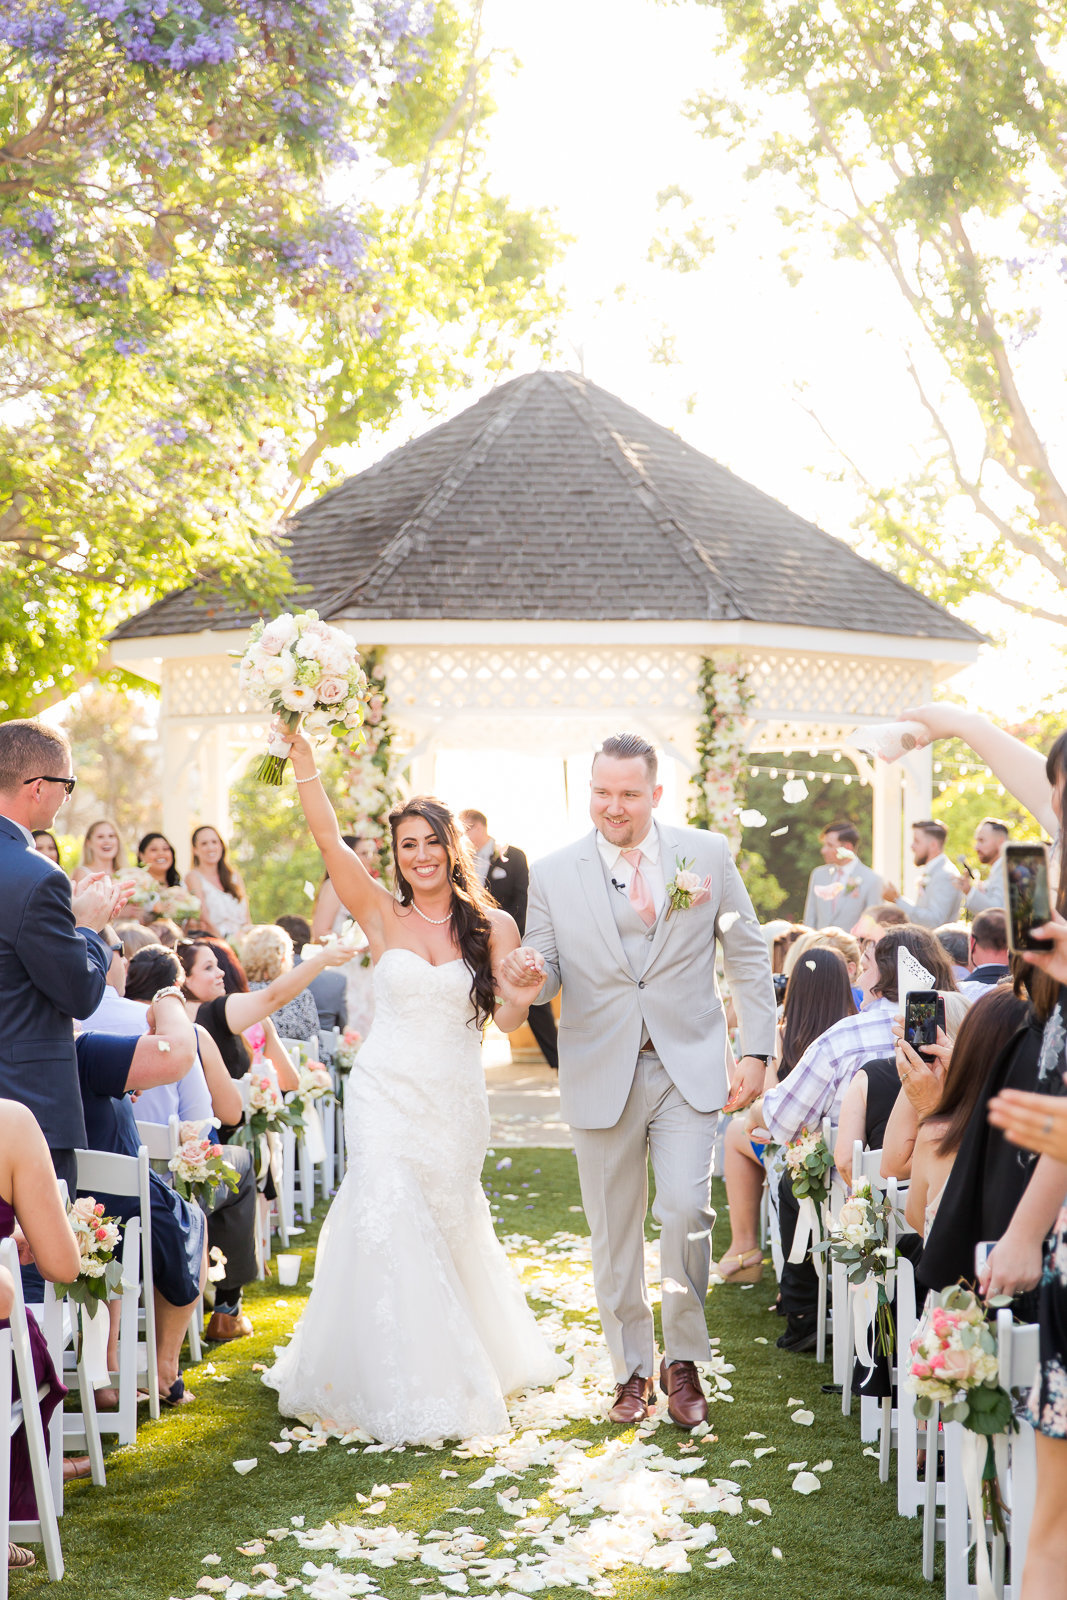 Bride and Groom Wedding Photo Ideas Theresa Bridget Photography Photo-106